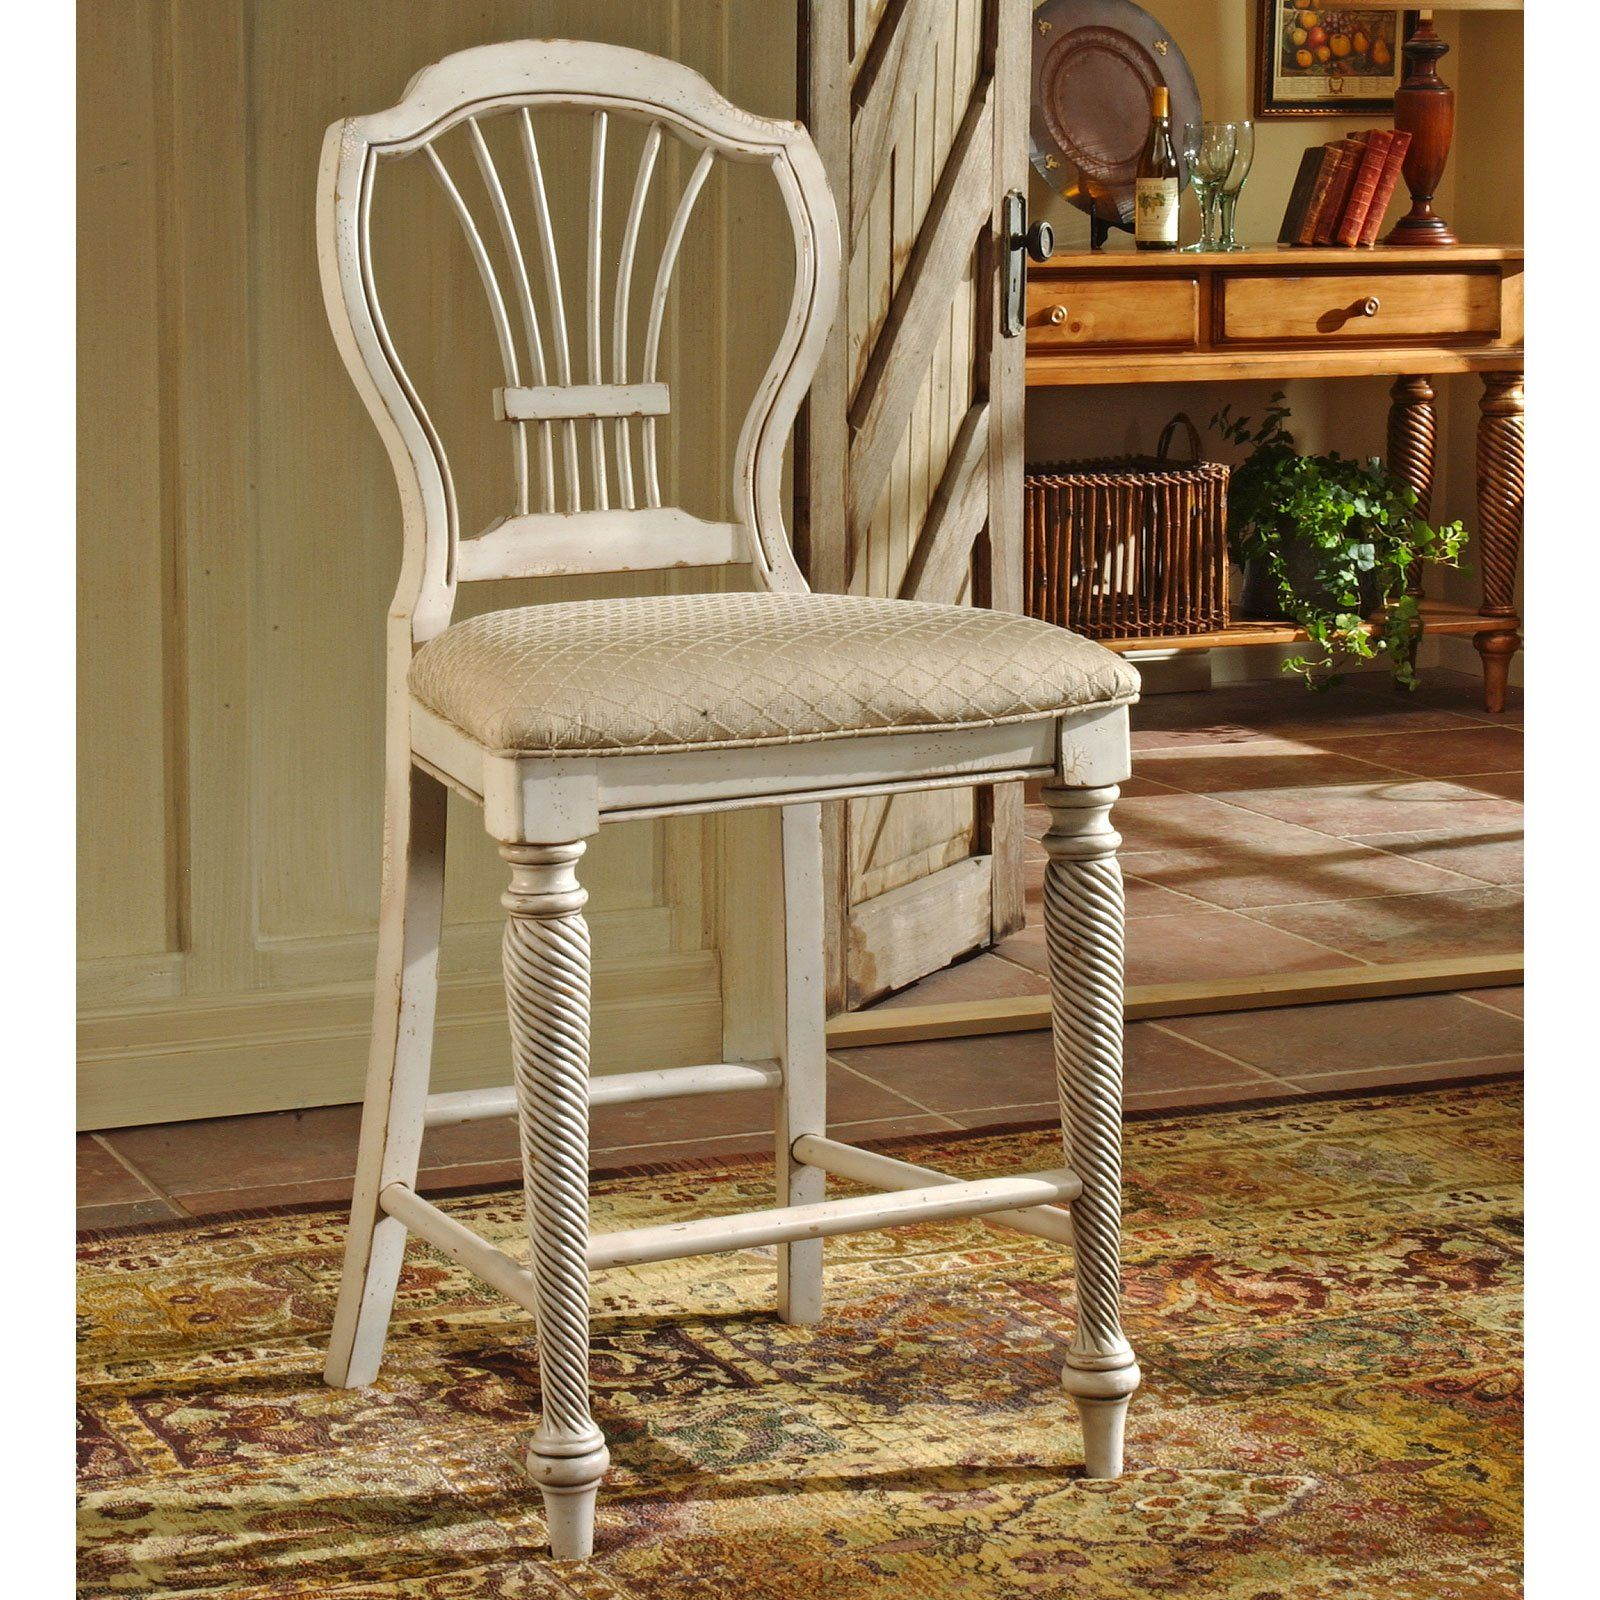 Have To Have It. Hillsdale Wilshire 24 In. Non-Swivel